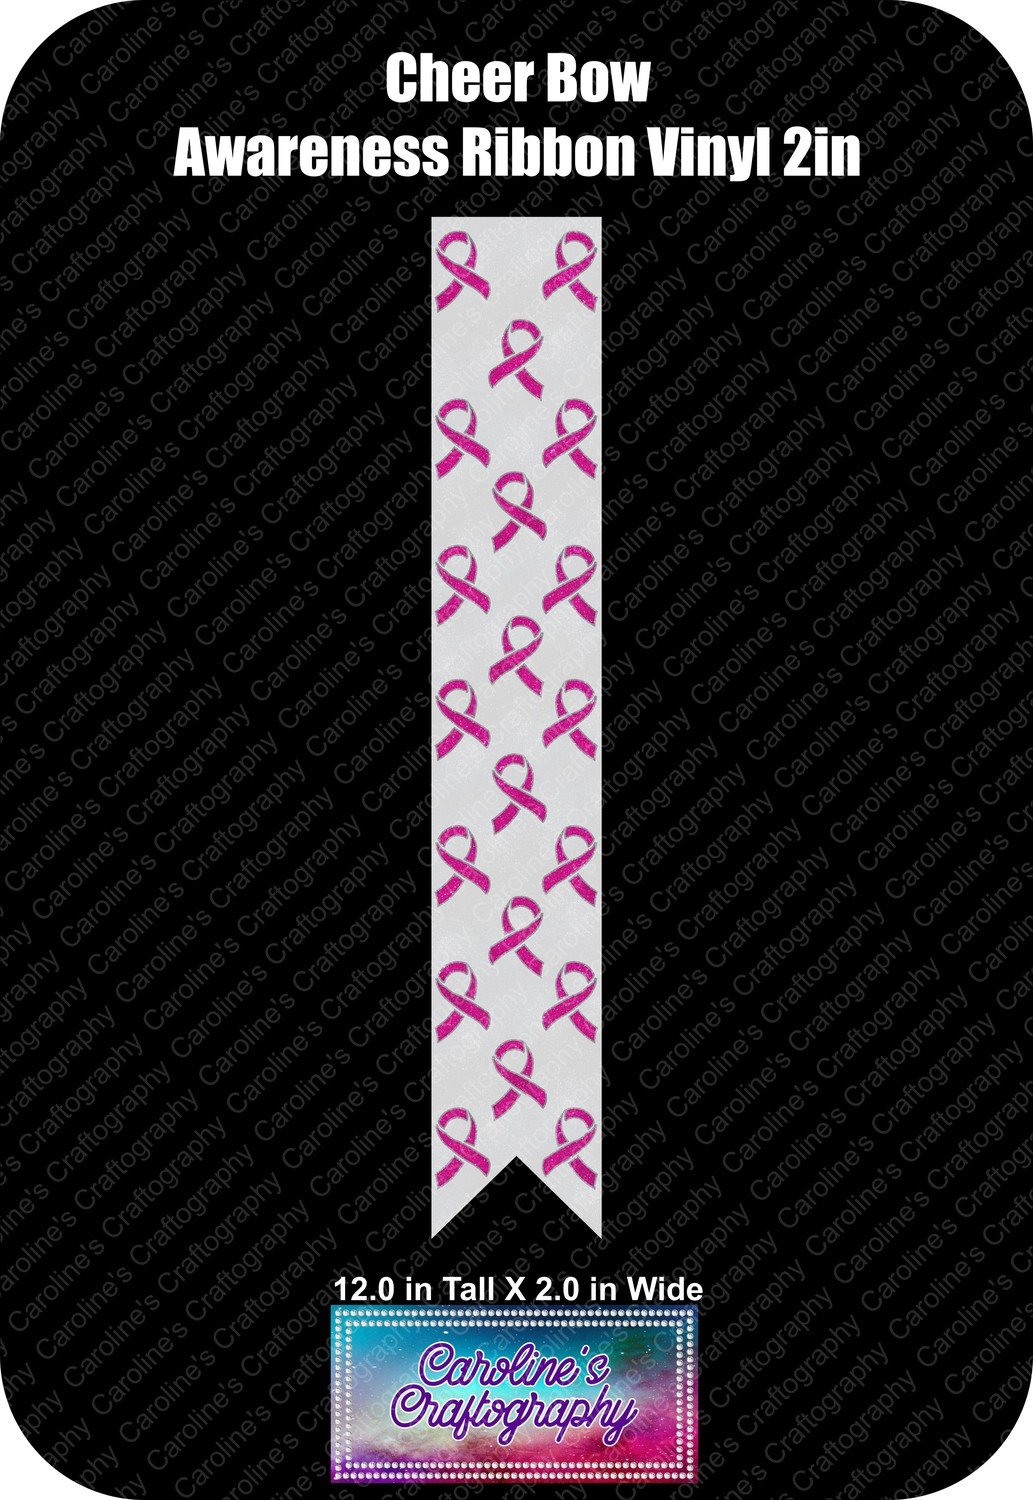 Cheer Bow Awareness Ribbon 2in vinyl